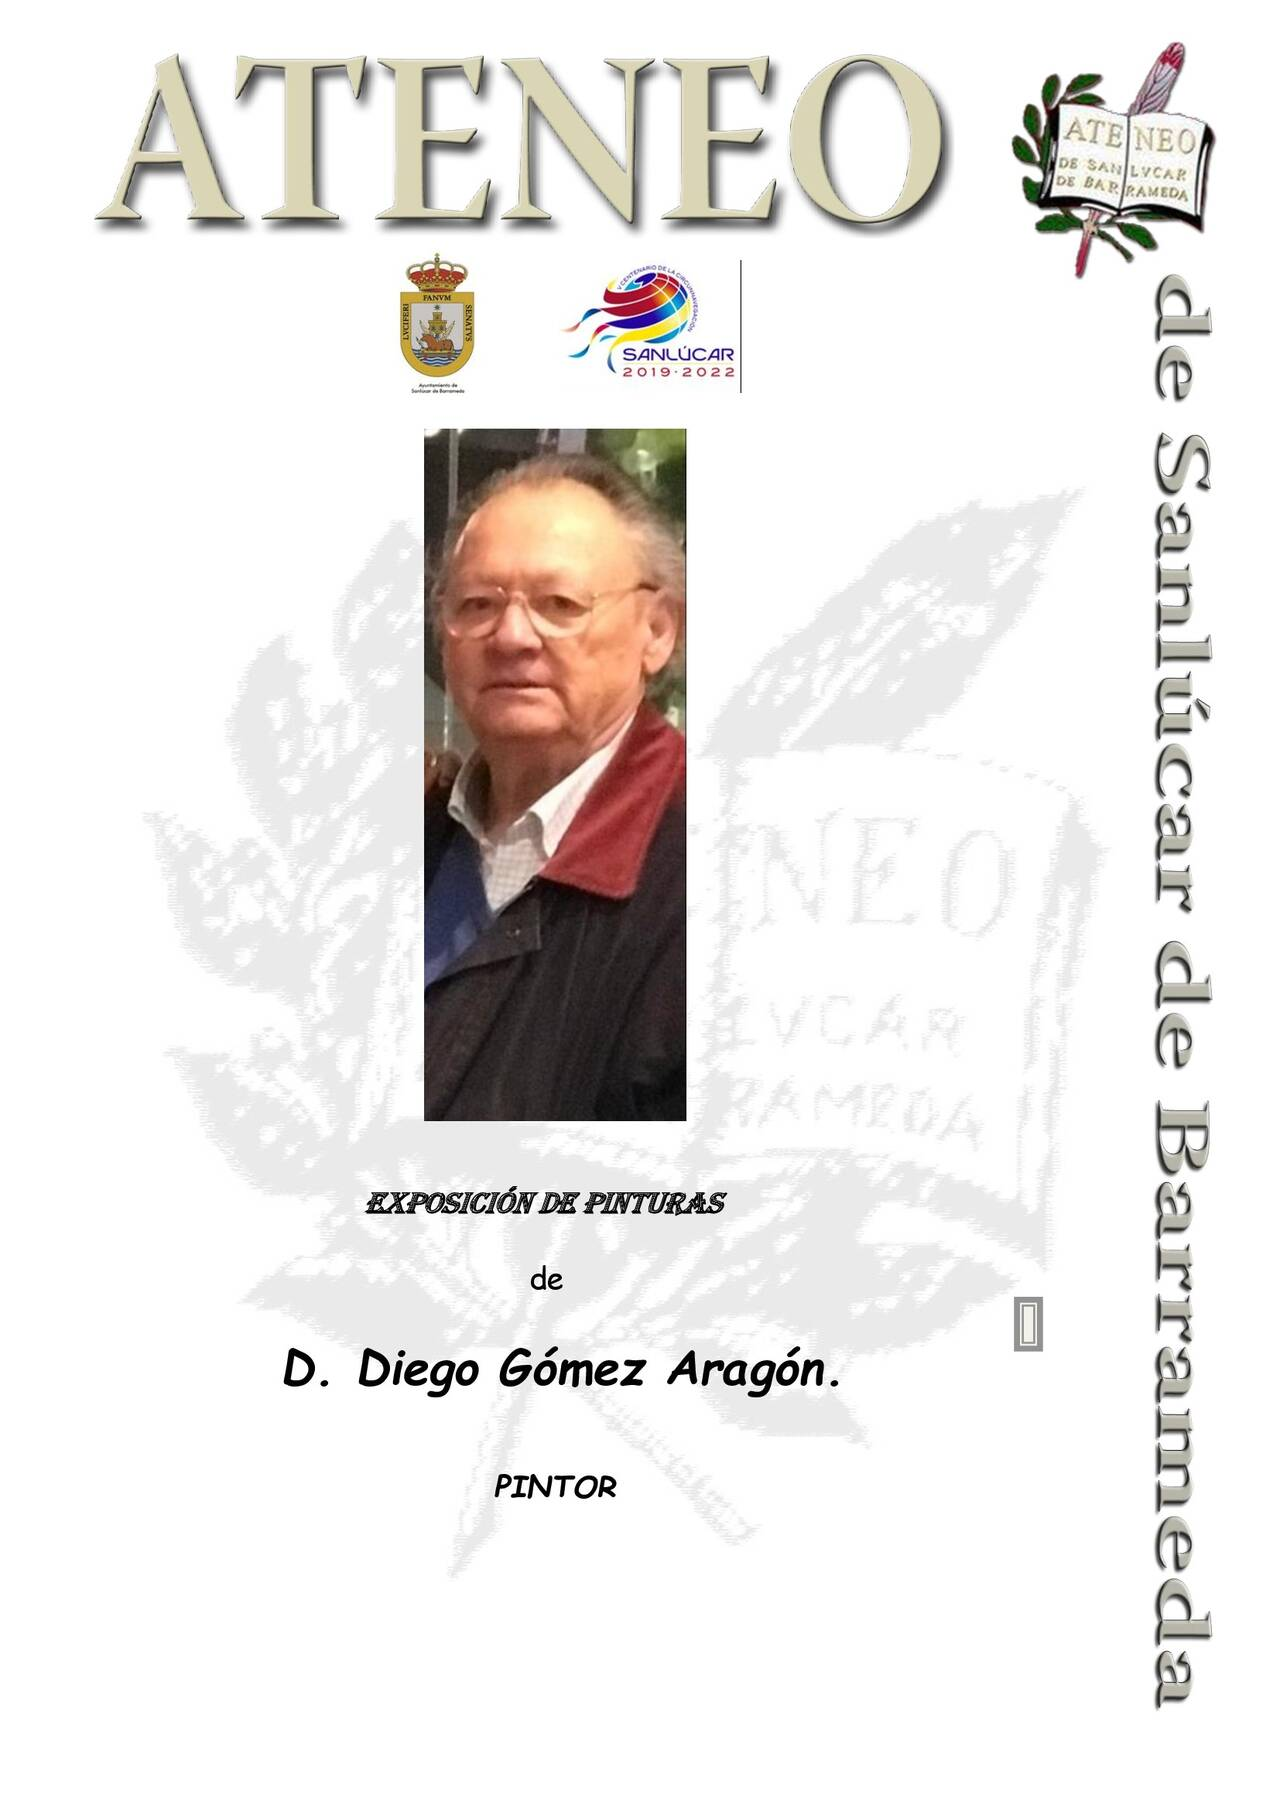 Exhibition of paintings by the painter Diego Gómez Aragón